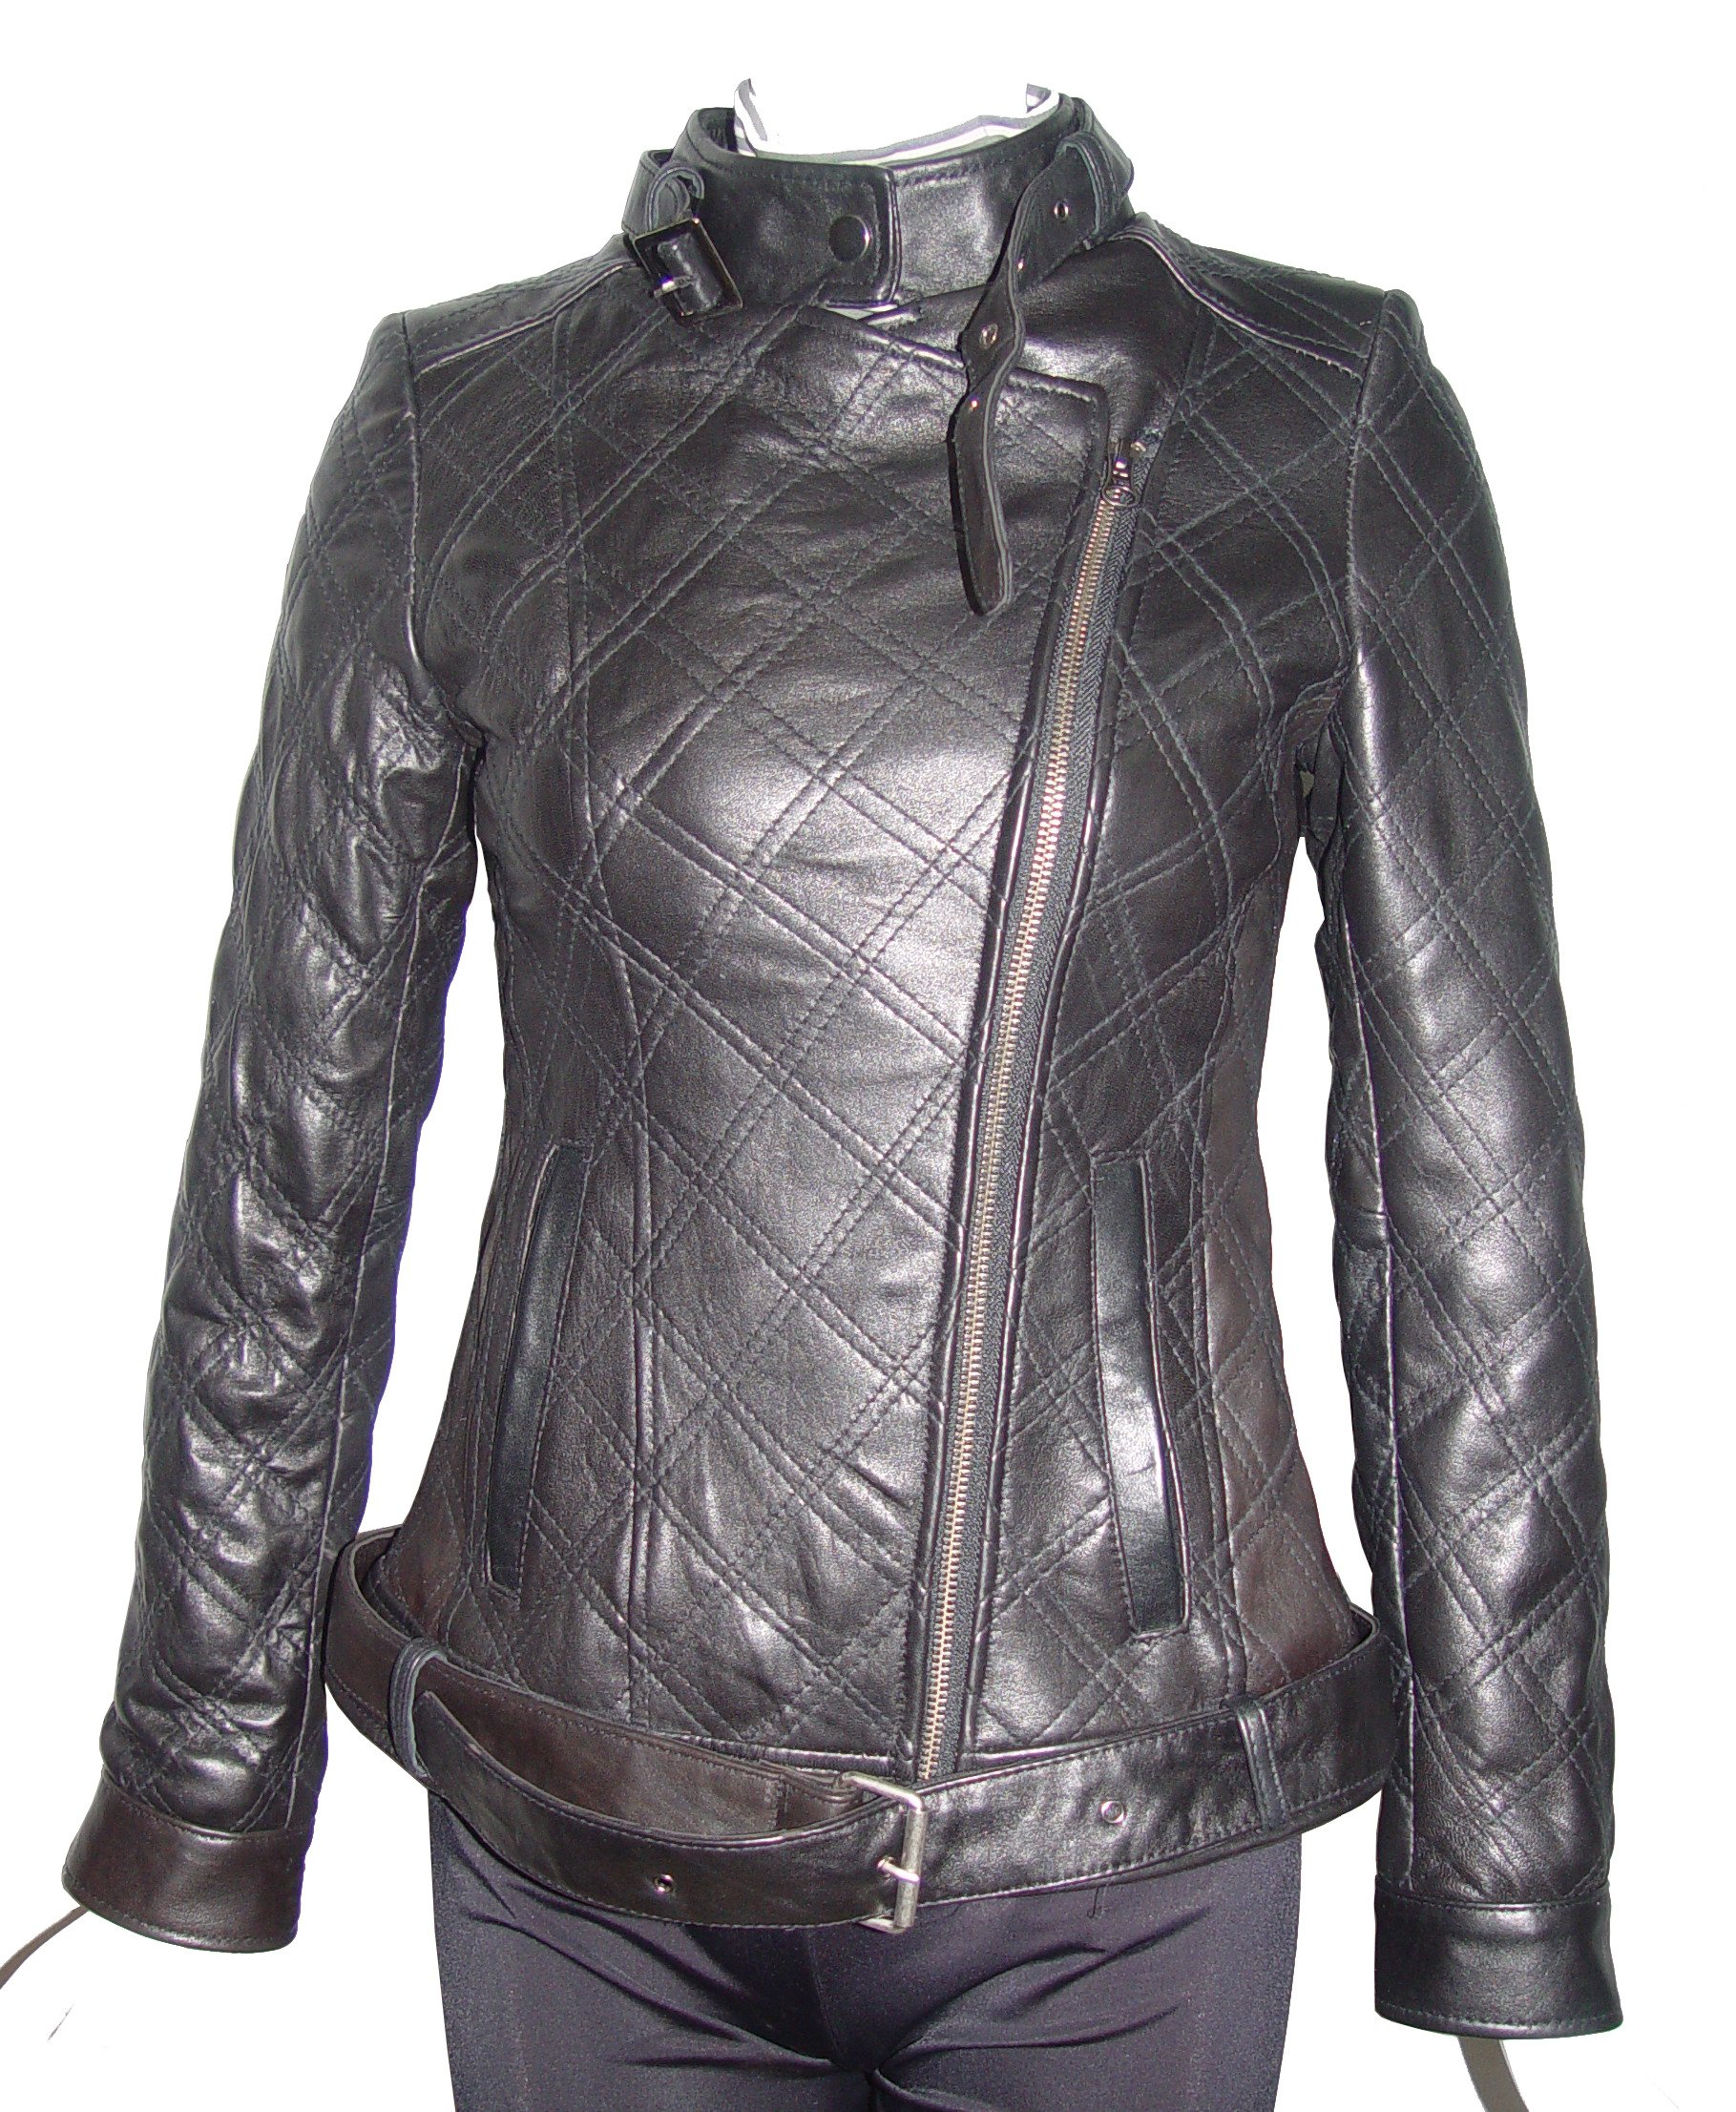 Nettailor Women PETITE & ALL SIZE Fashion 4123 Leather Motorcycle Jacket